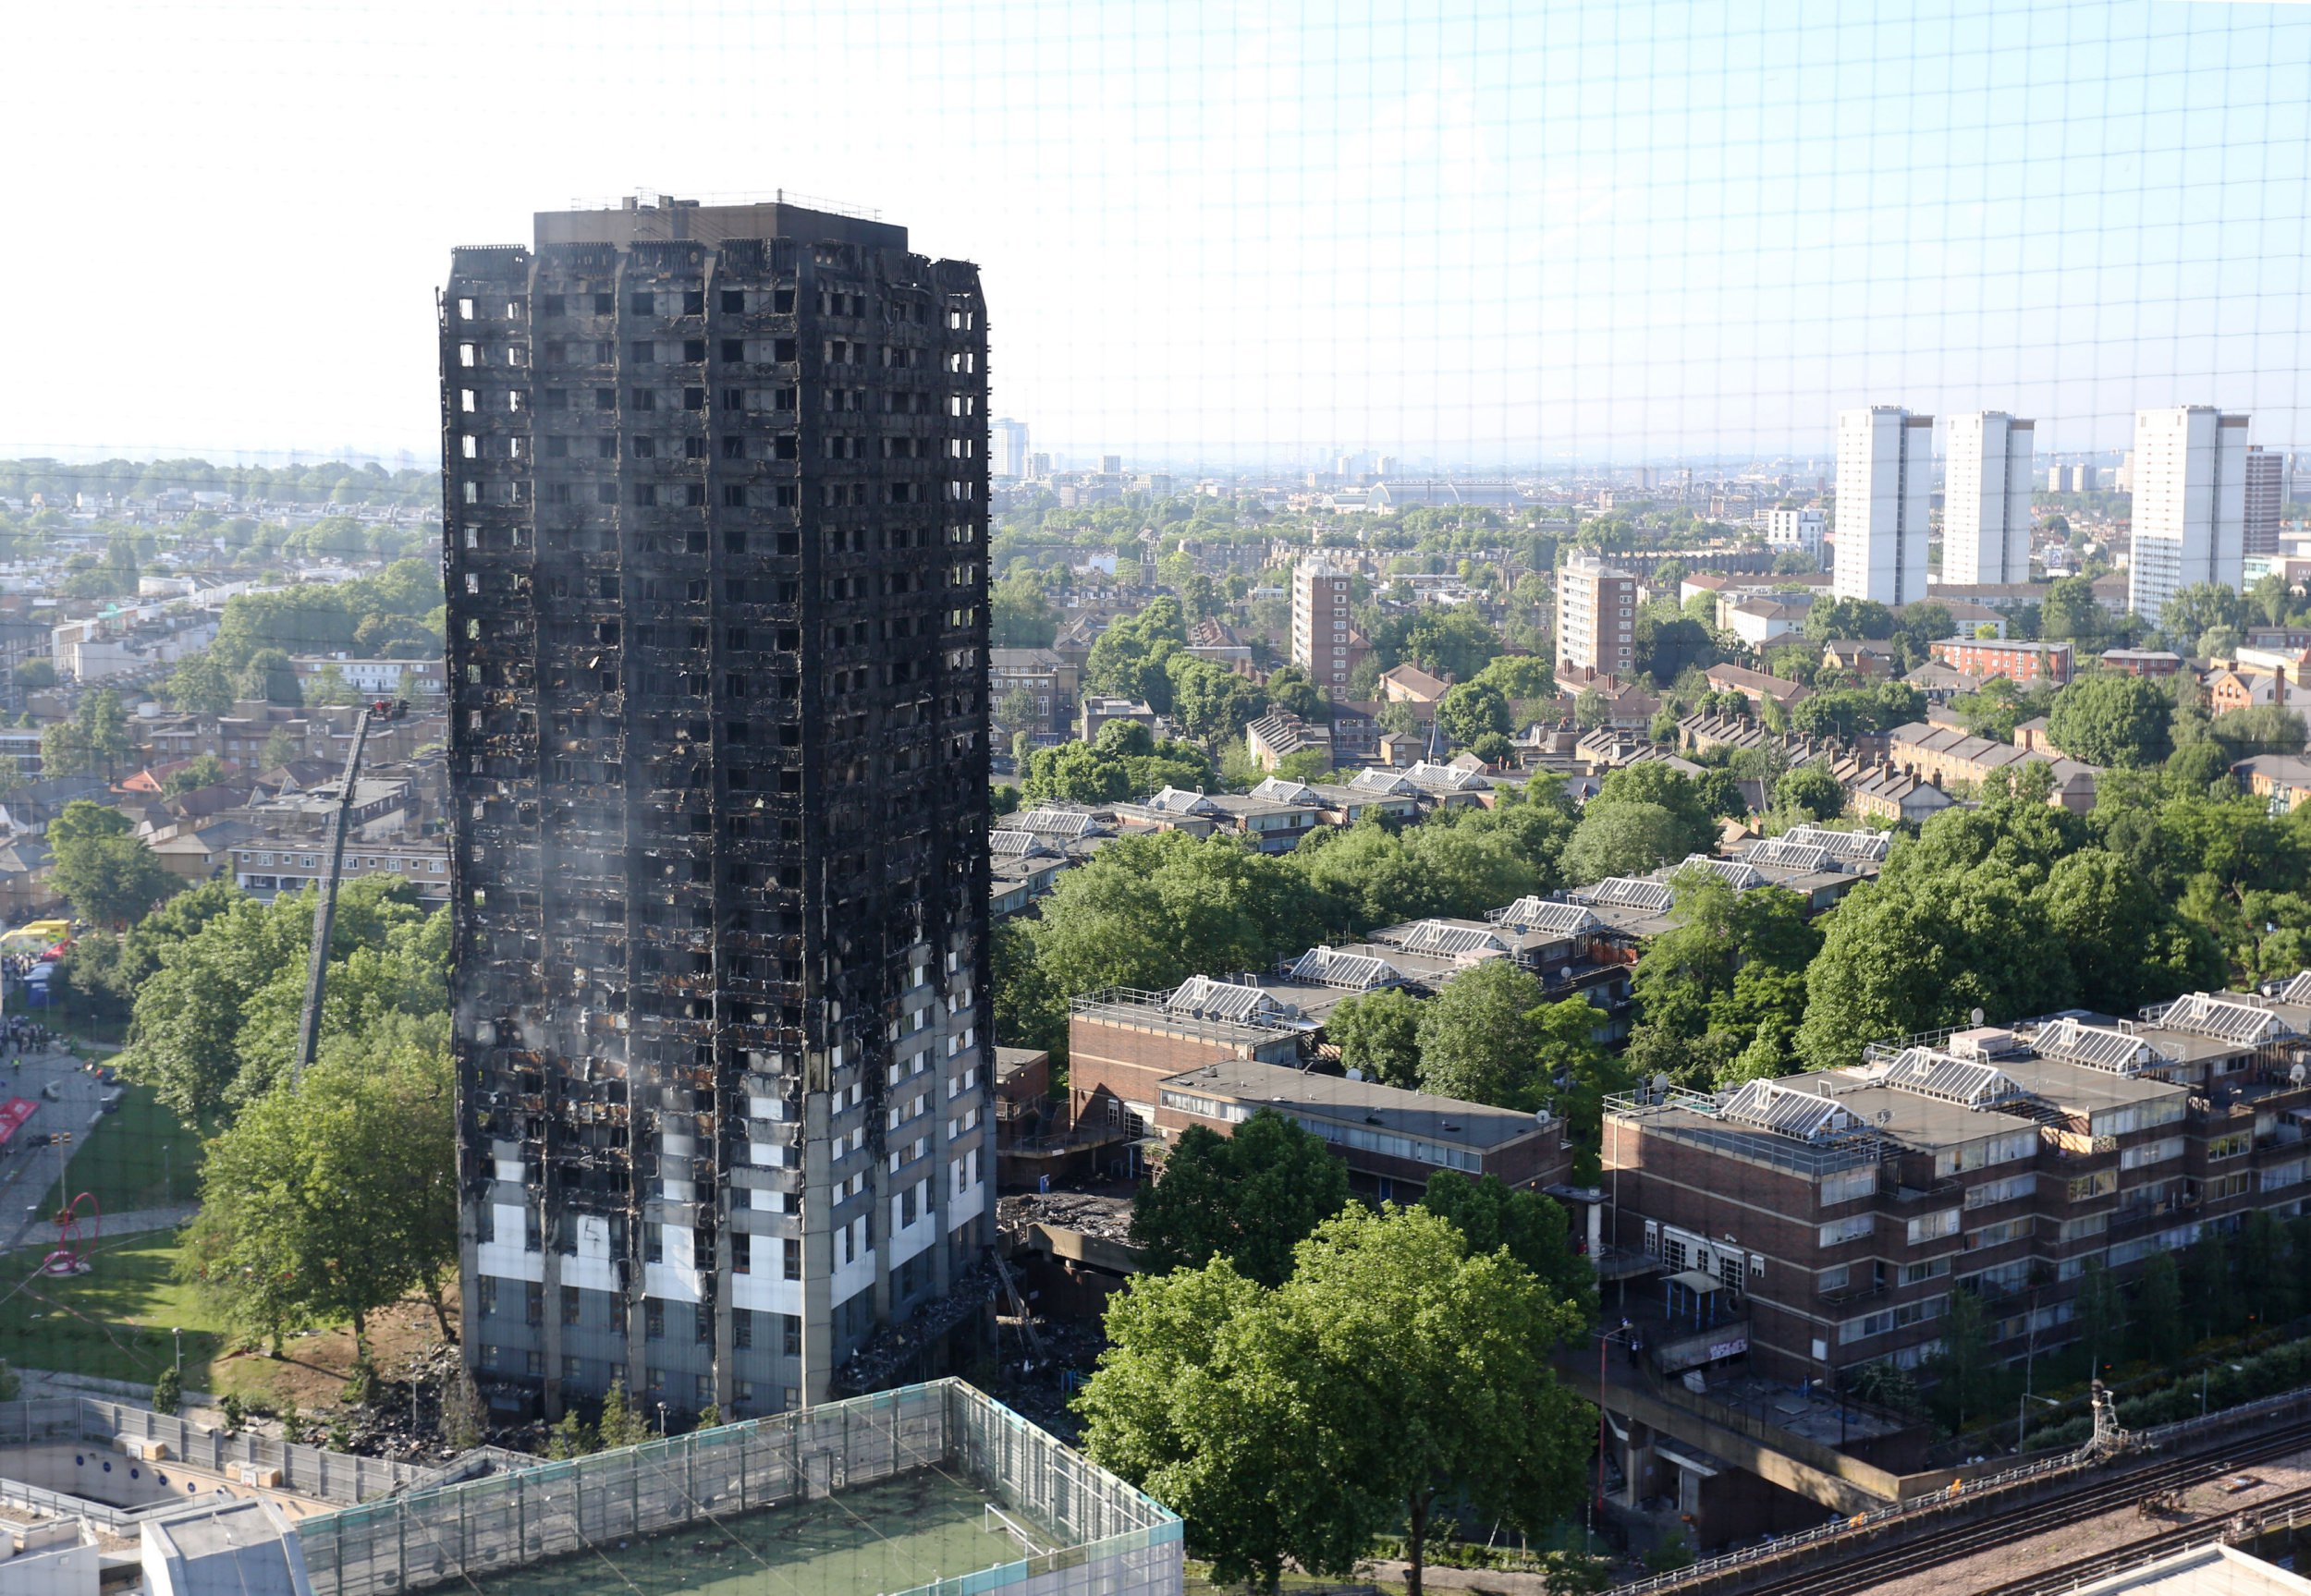 How many people died in the Grenfell Tower fire?